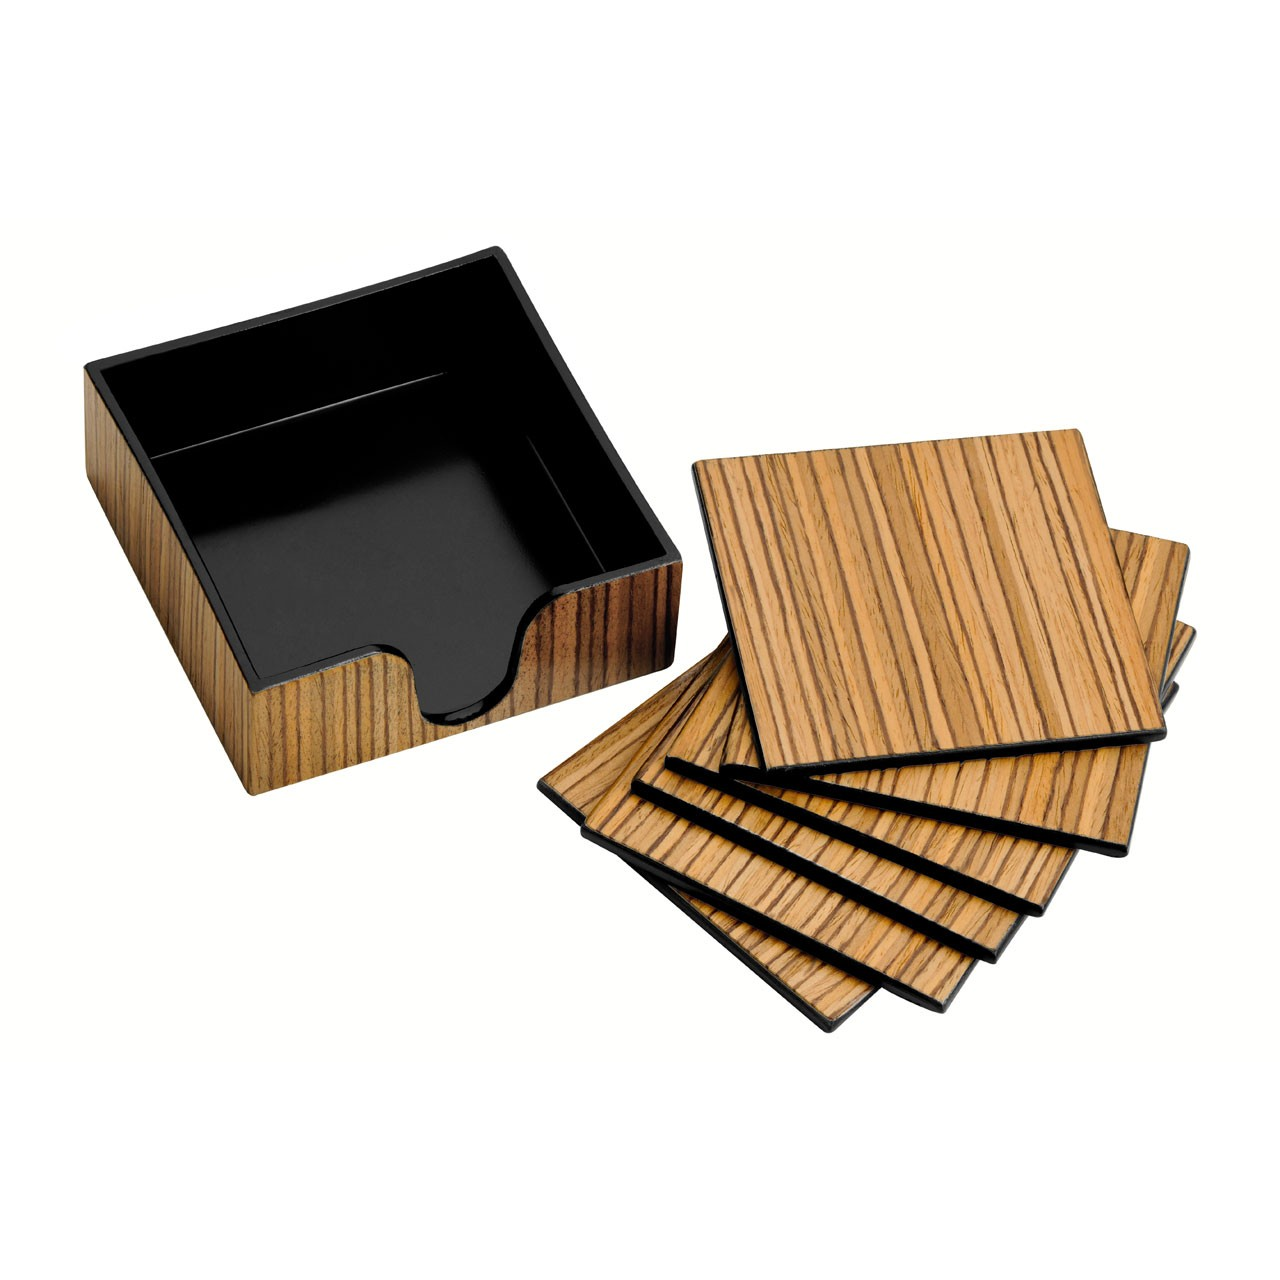 Elegant Coasters Set of 6 With Holder Made of Plastic & Wood Ven